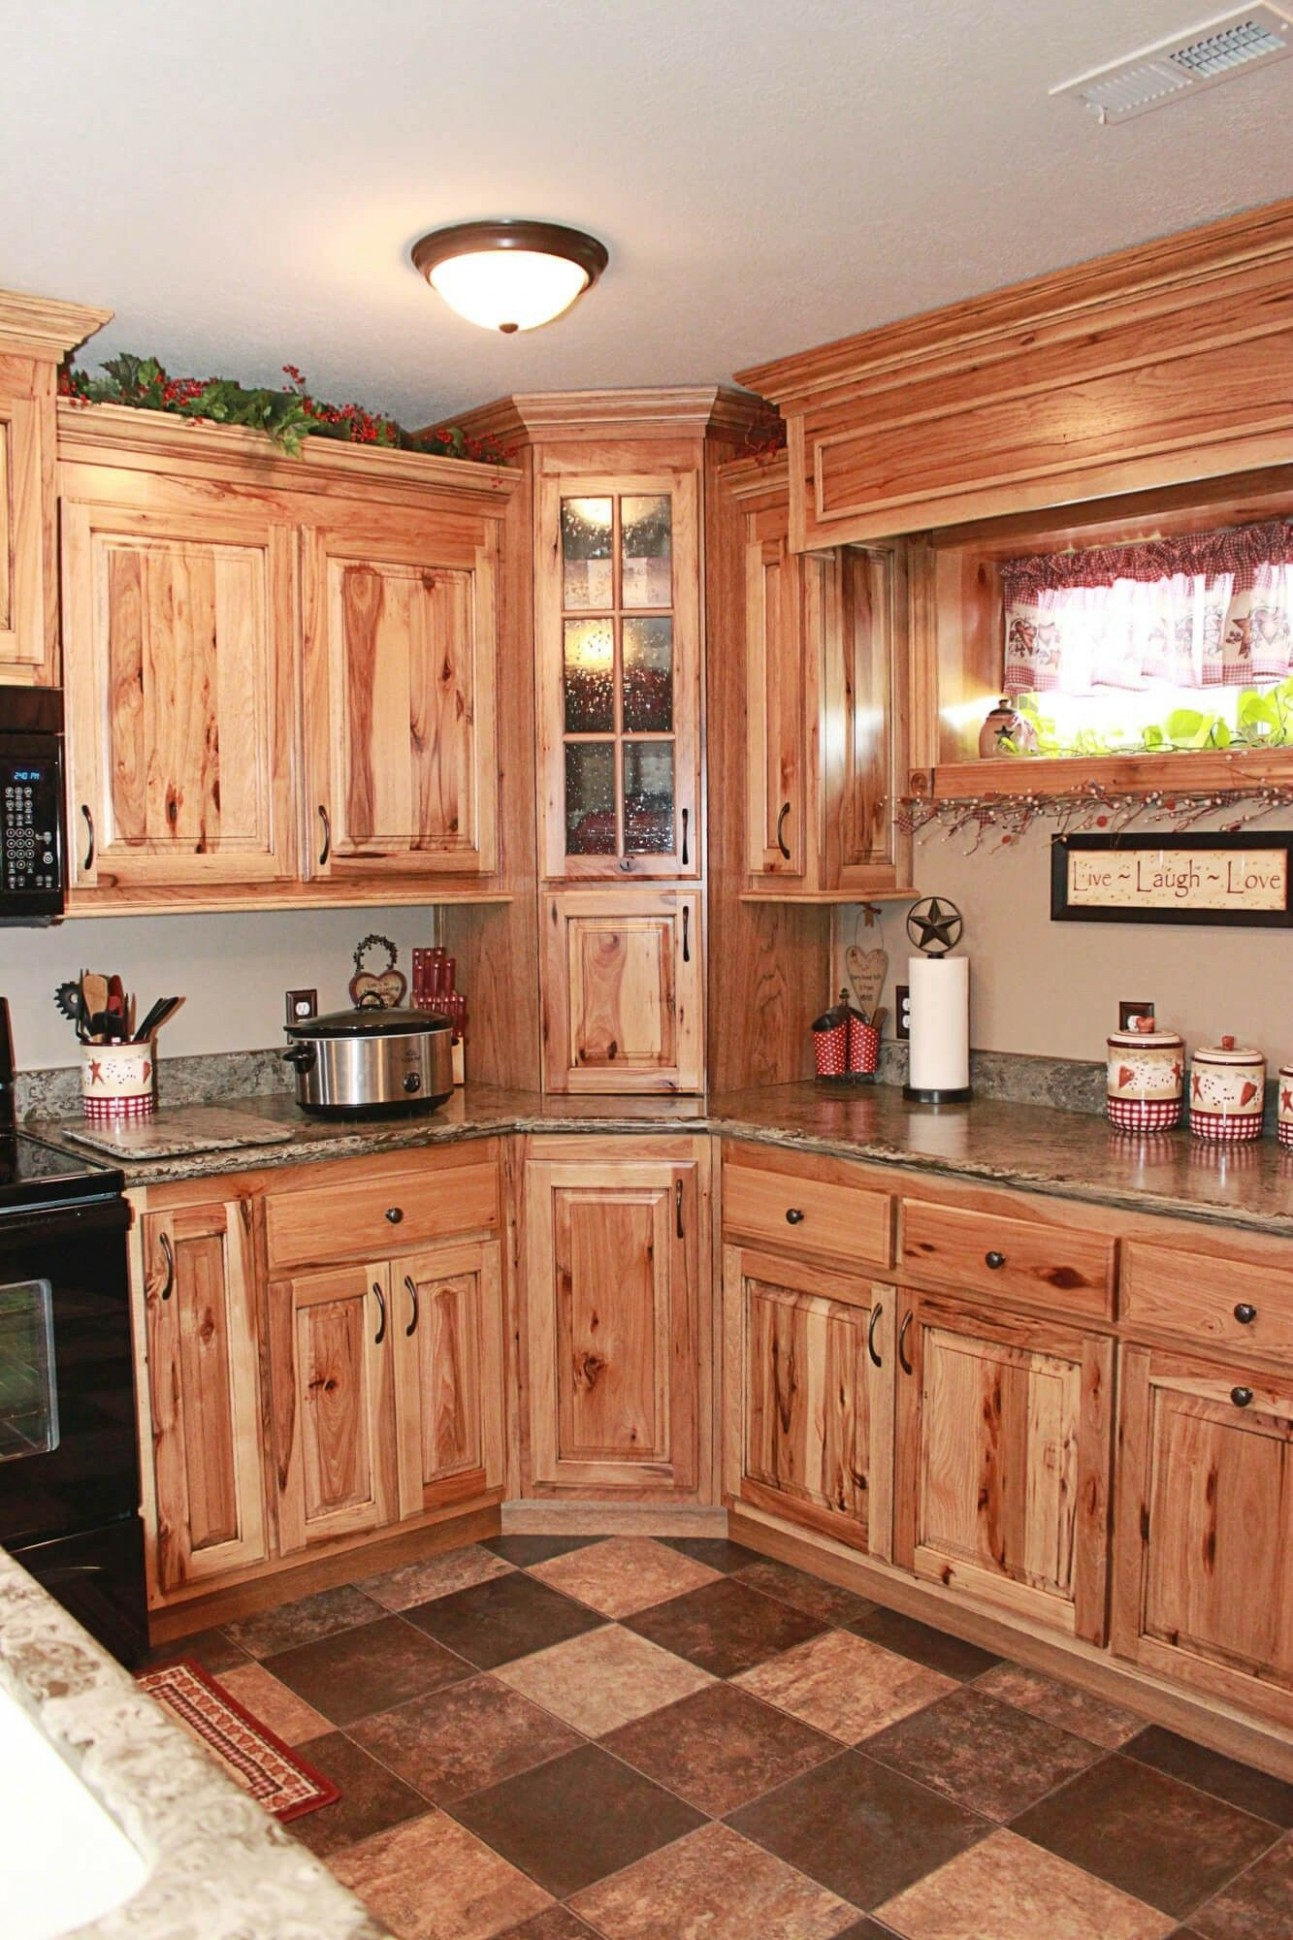 Rustic Hickory Kitchen Cabinets Elegant Best Knotty Shaker Style  - Natural Hickory Kitchen Cabinets